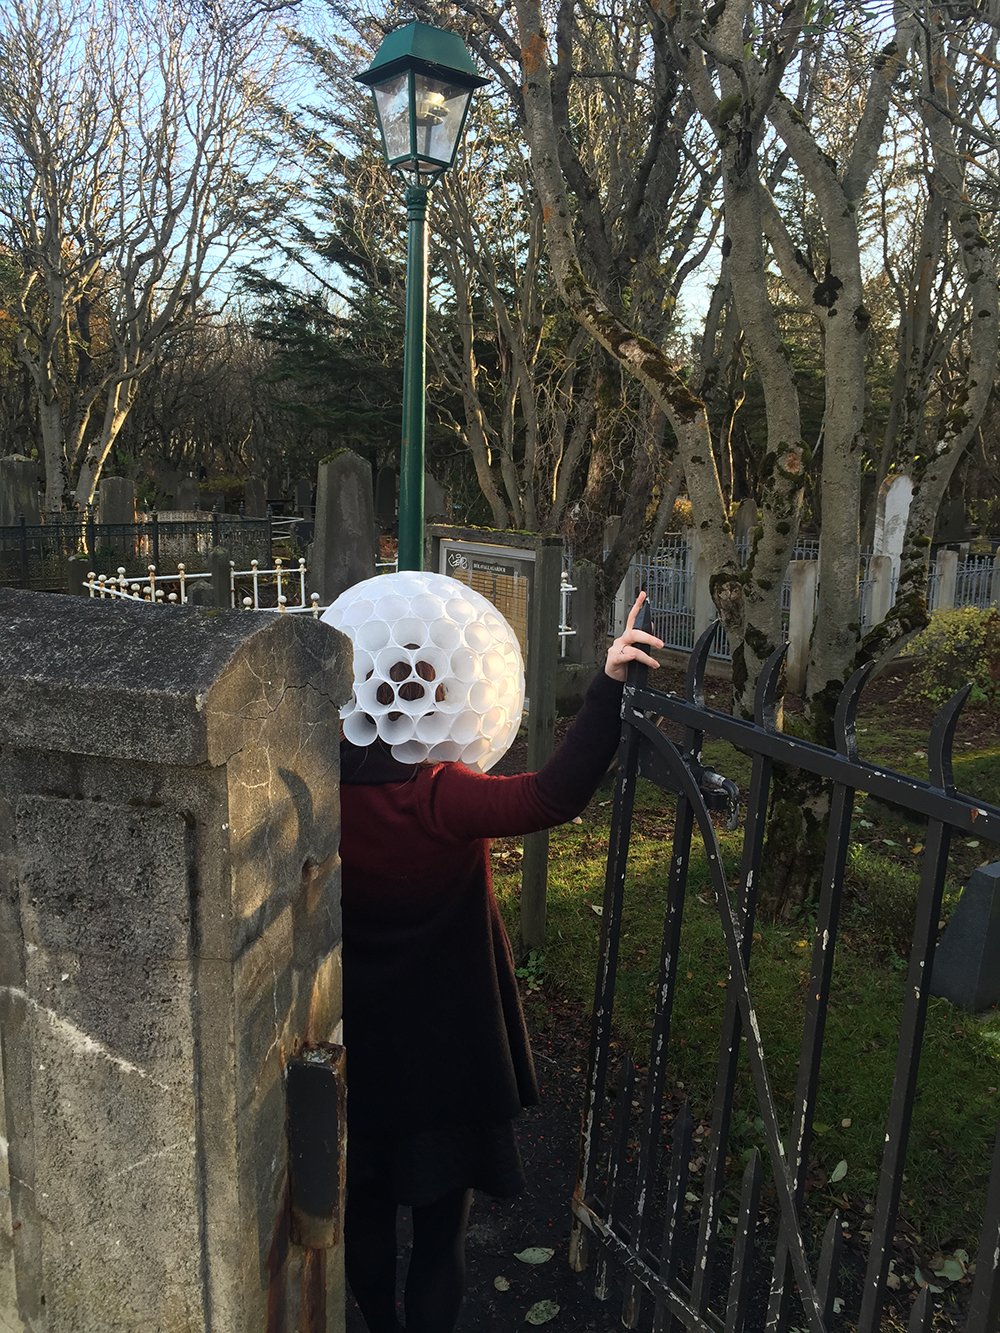 Perfect spooky fence. Giant golf ball head.